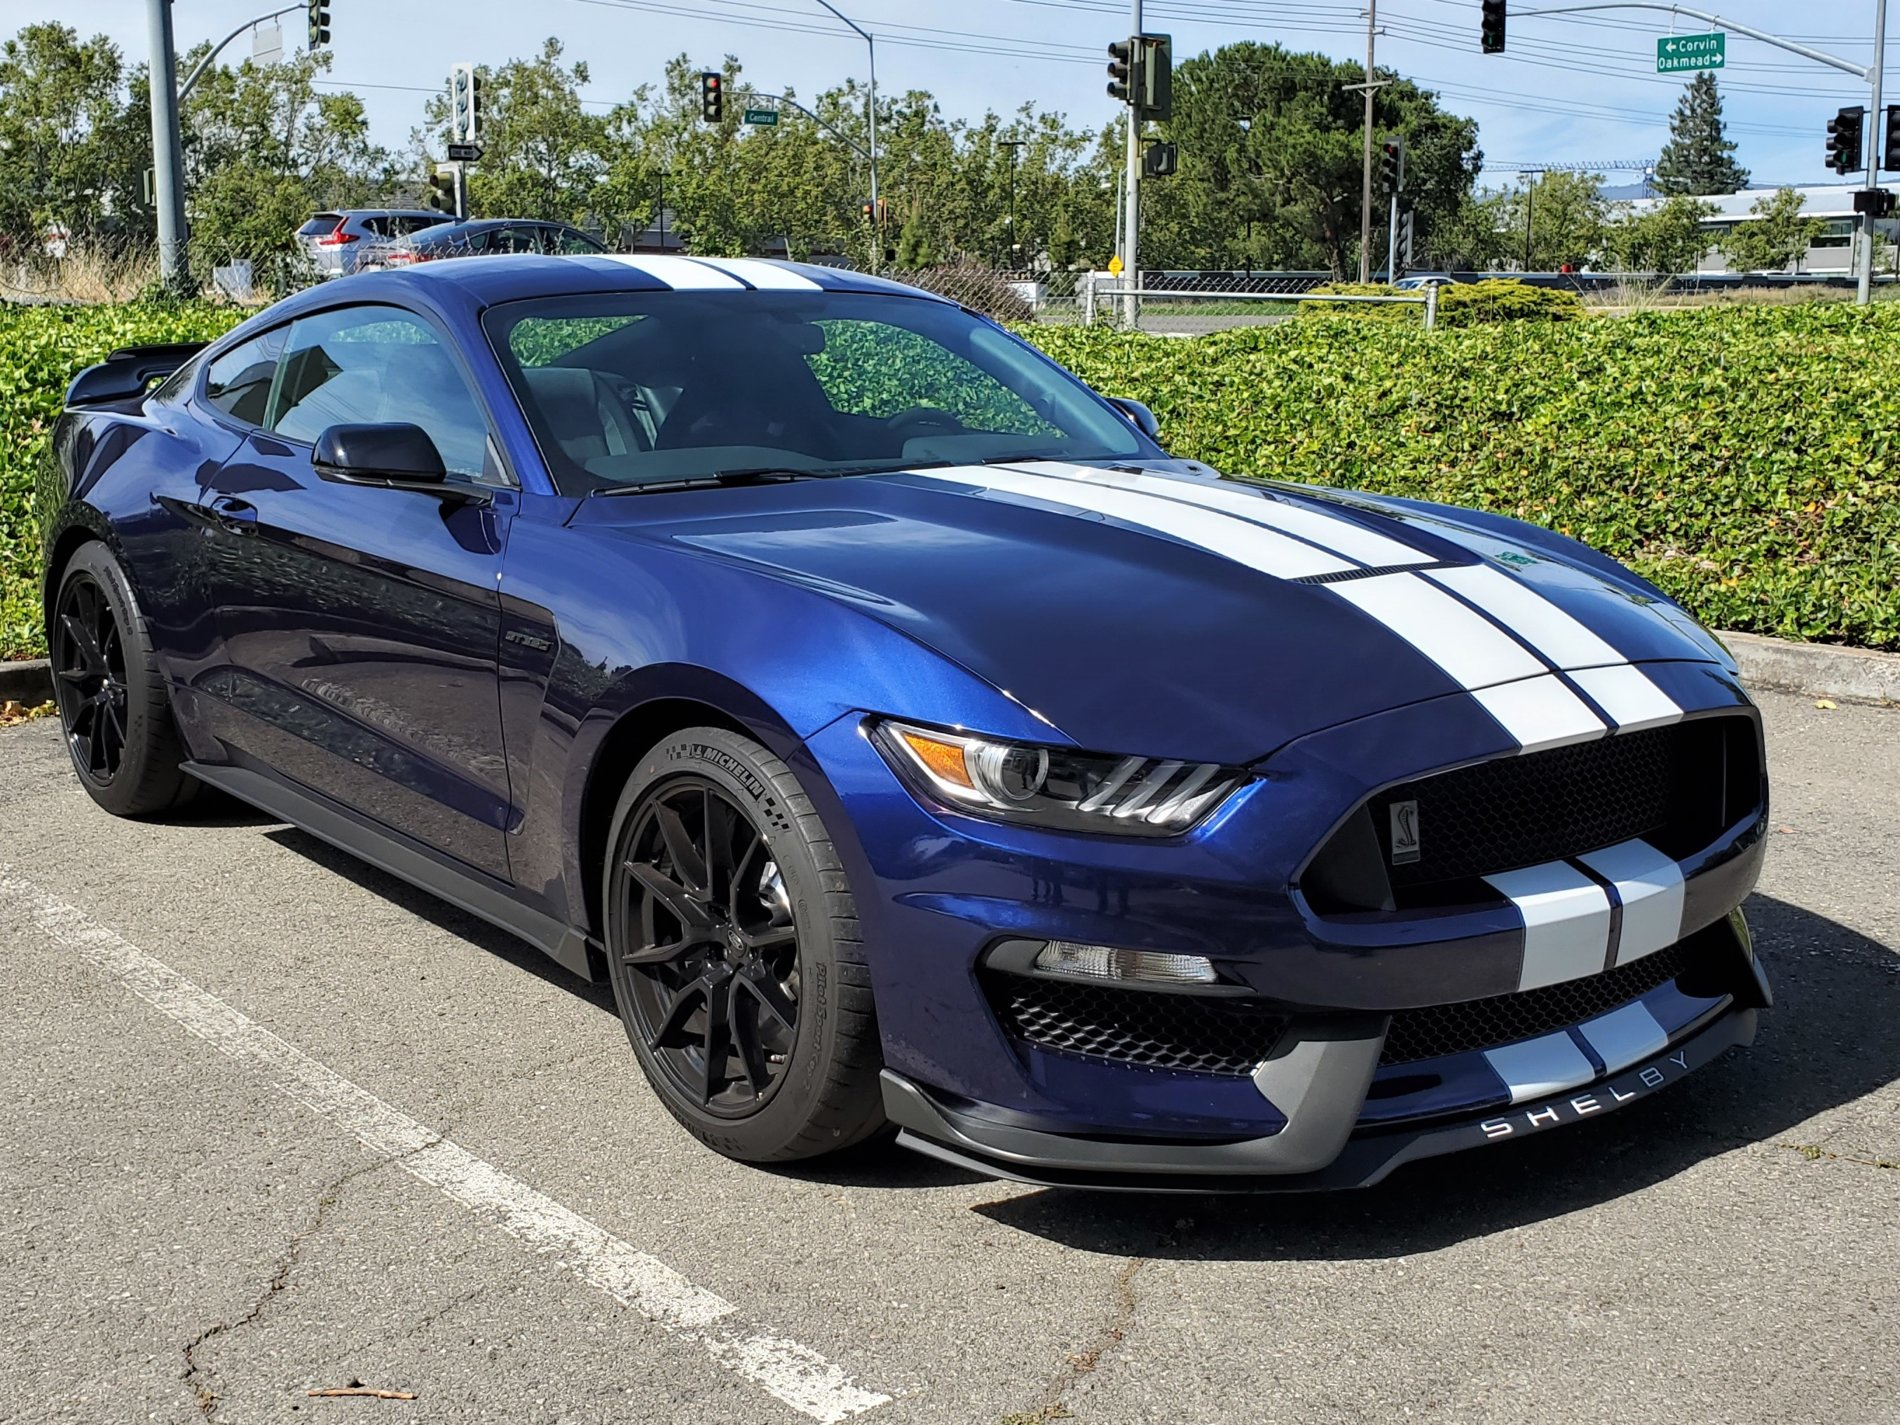 Mustang Mach 2 >> New owner - 2019 GT350, Kona Blue w/ White Stripes | 2015 ...